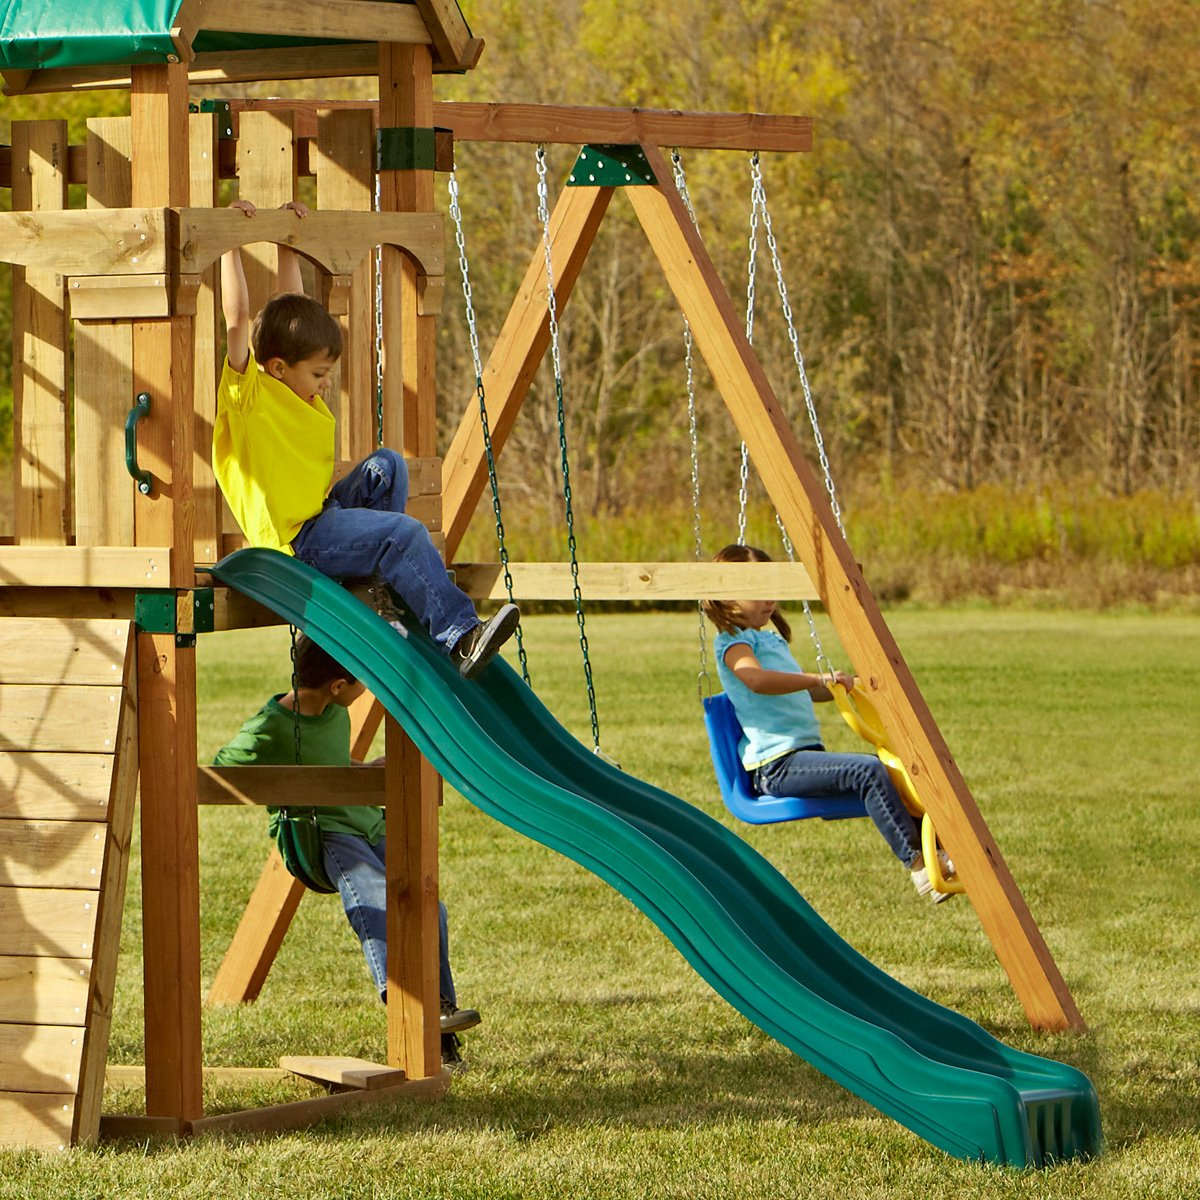 Swing-N-Slide WS 8335 Cool Wave Slide for 4' Decks with Included Safety Handles, Green by Swing-N-Slide (Image #3)